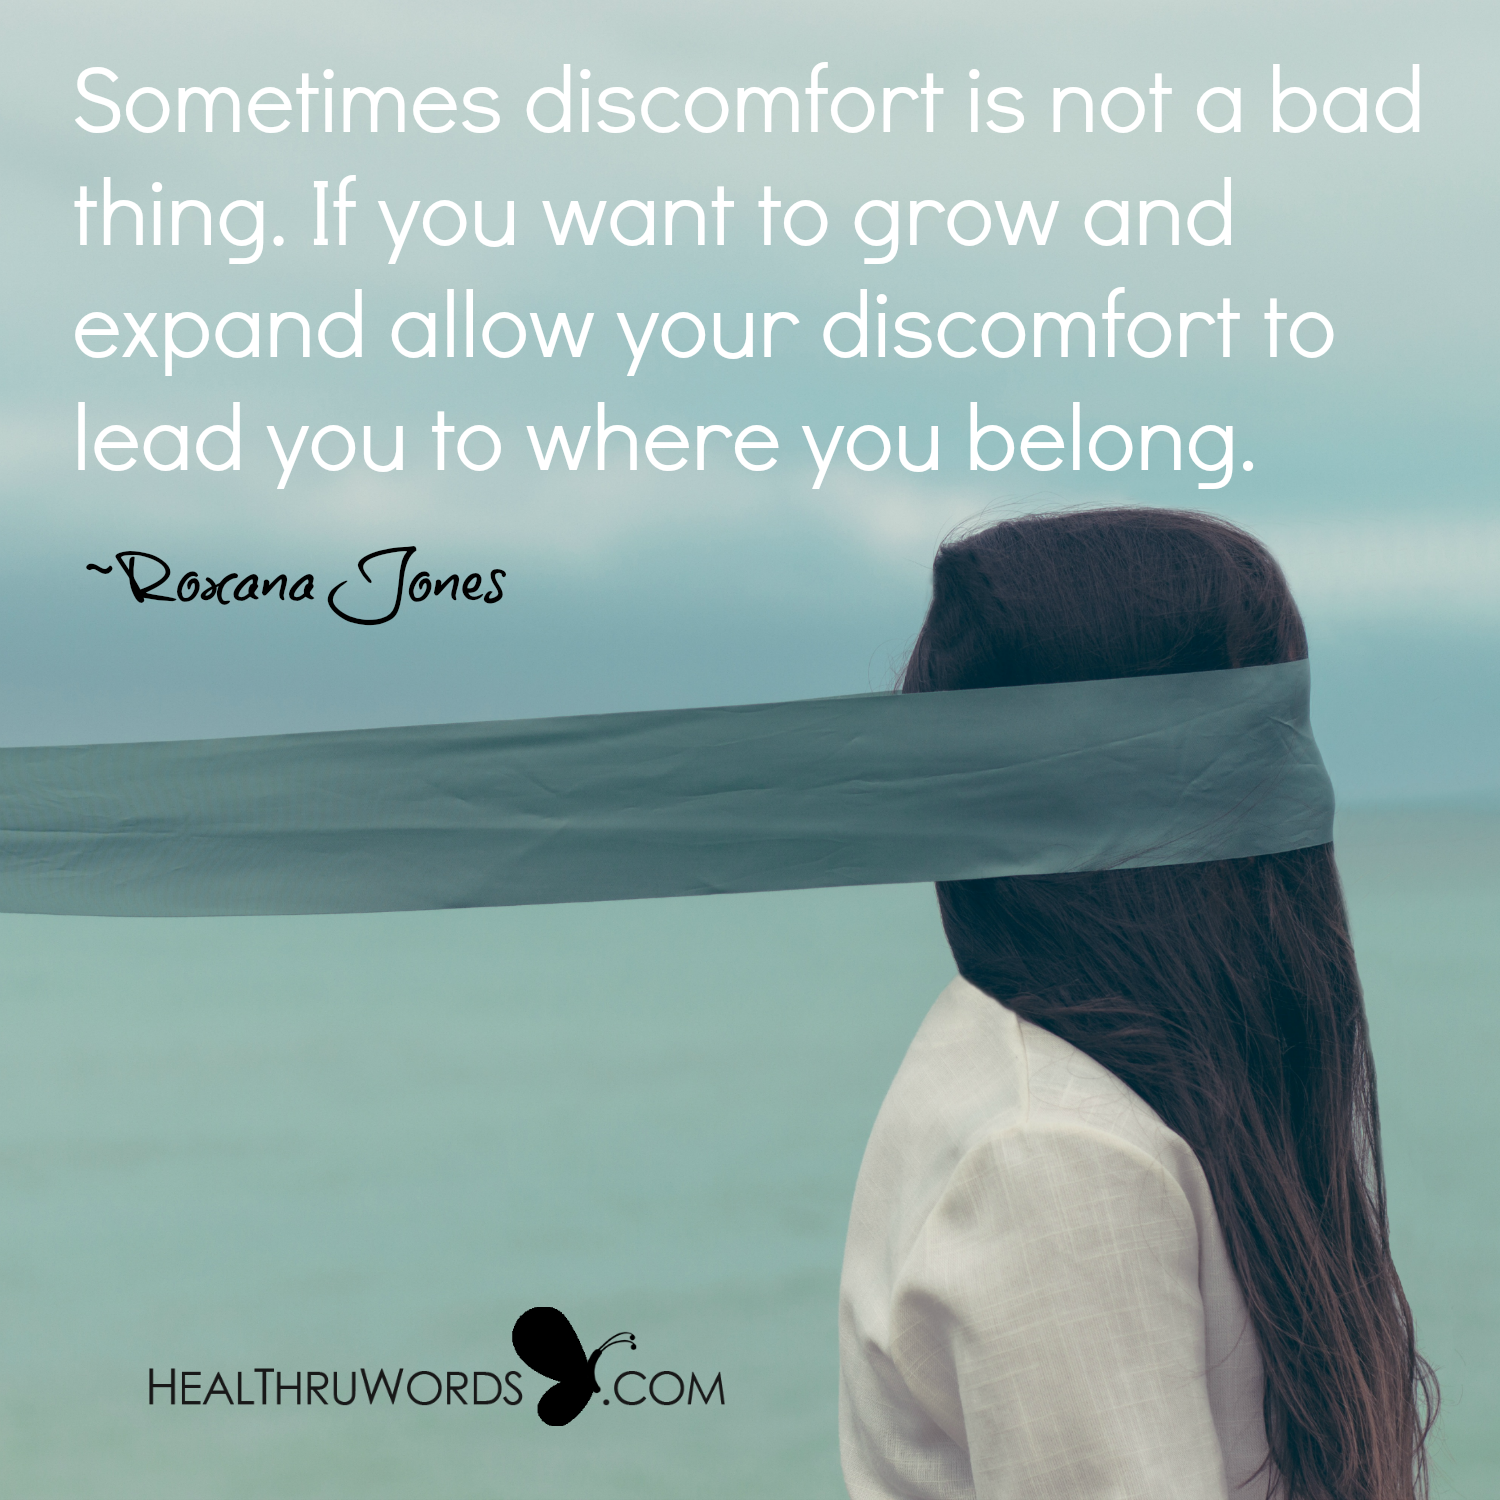 Inspirational Image: The Blessing of Discomfort